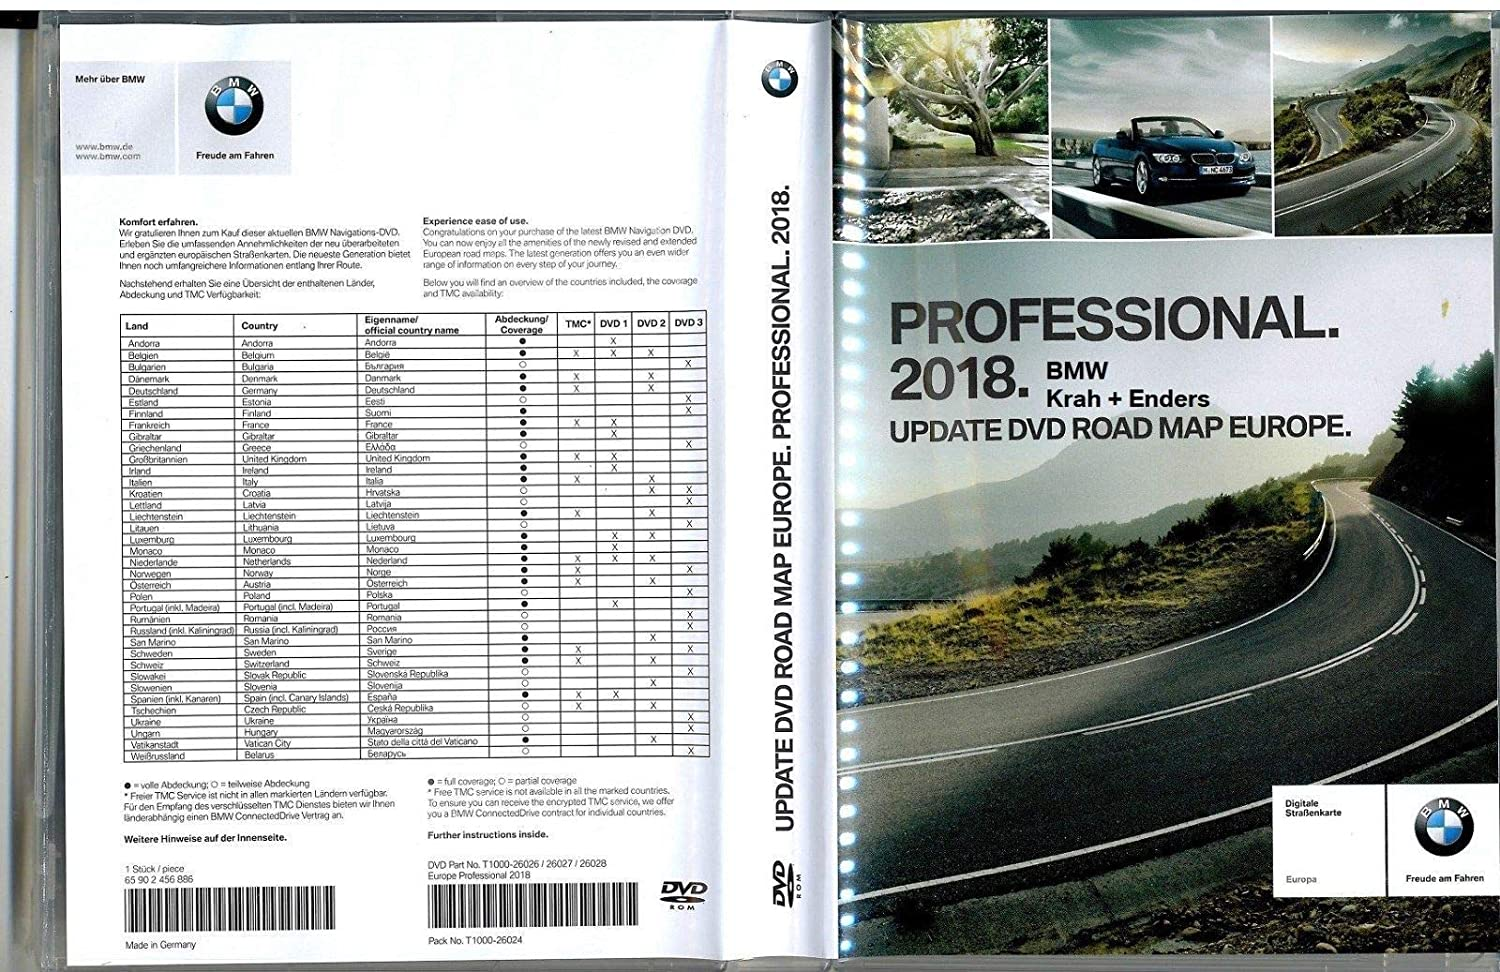 Genuine Bmw 2018 Professional Navigation Maps Europe Amazon Co Uk